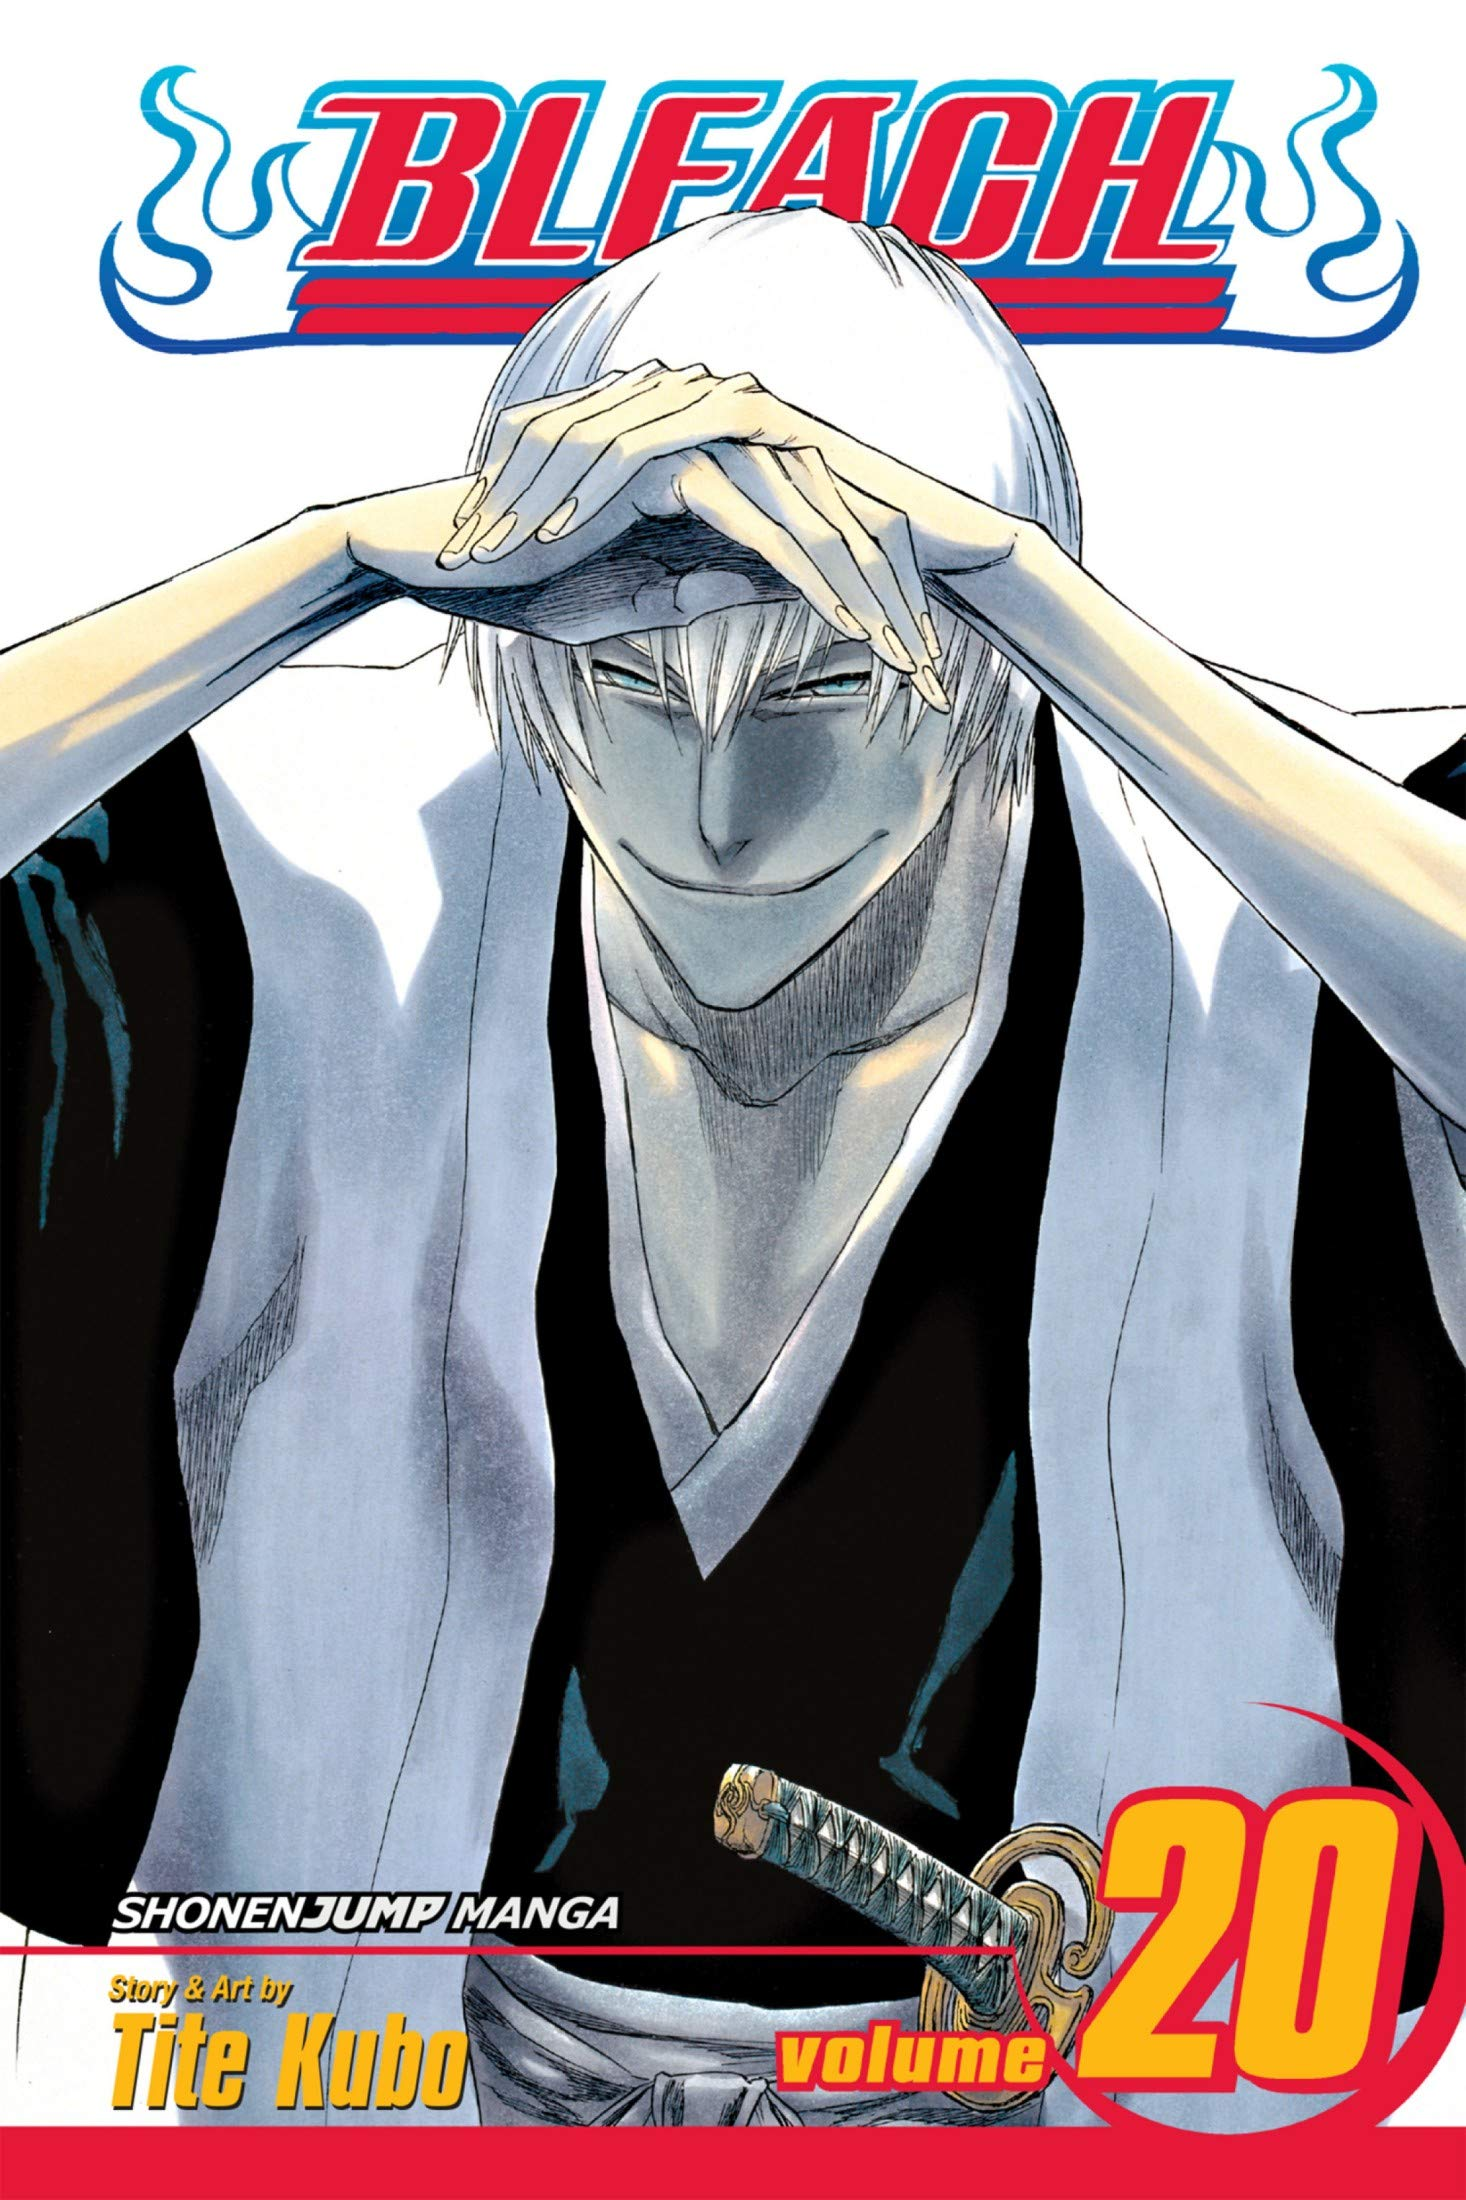 Bleac: Book 20 Includes Vol 58 -59 - 60 - Great Bleach Action Graphic Novel Manga For Teens , Adults, Fan